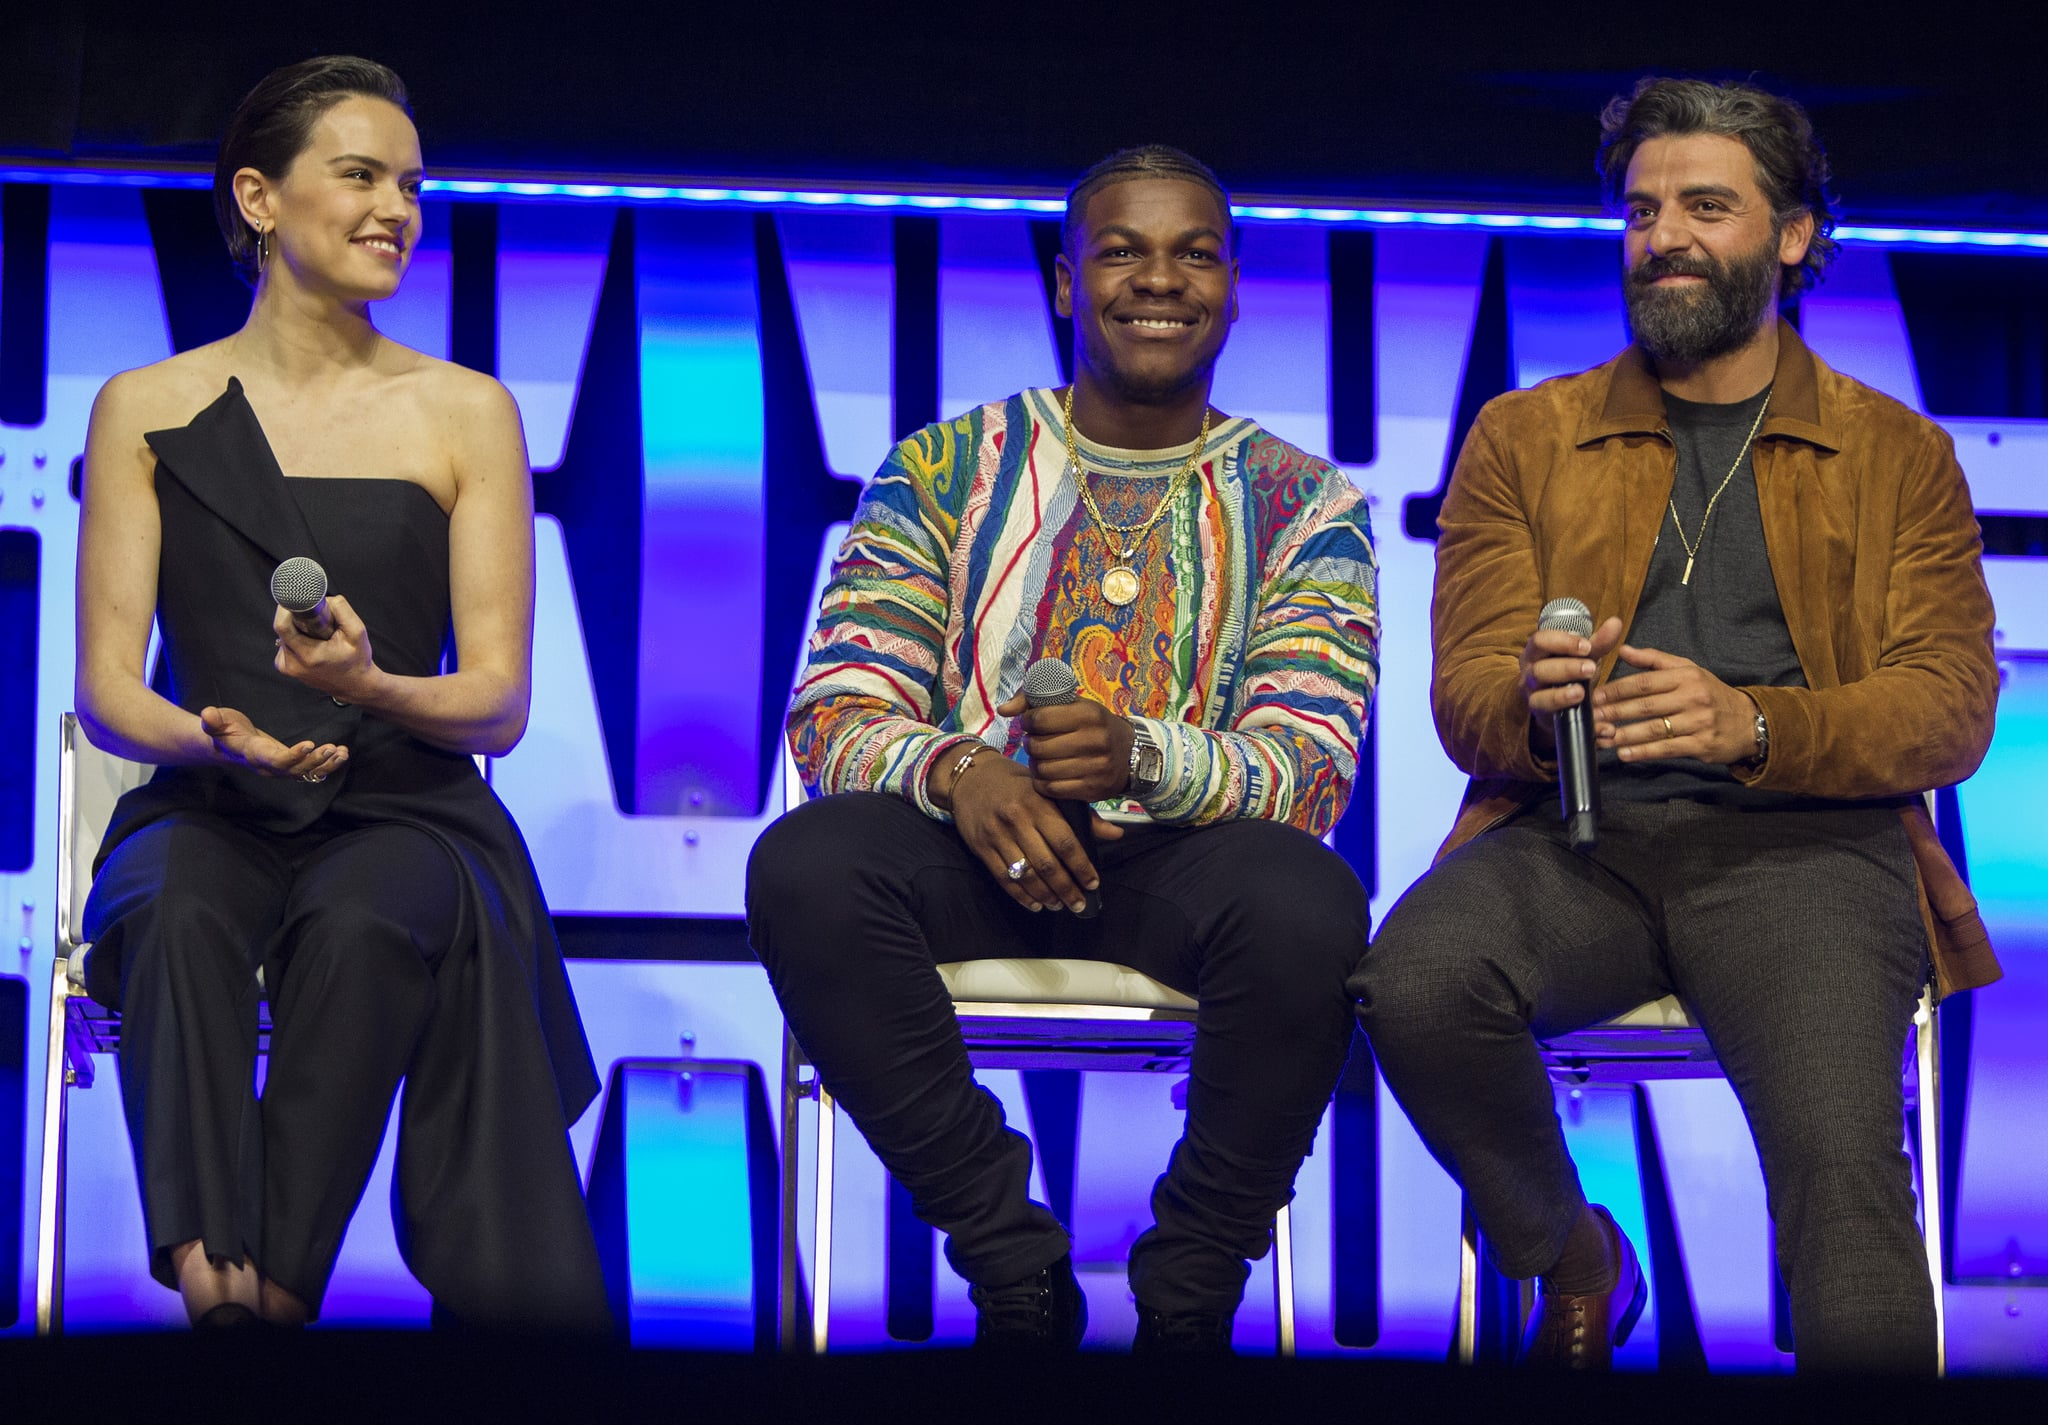 Daisy Ridley and John Boyega to feel the power at Star Wars debut